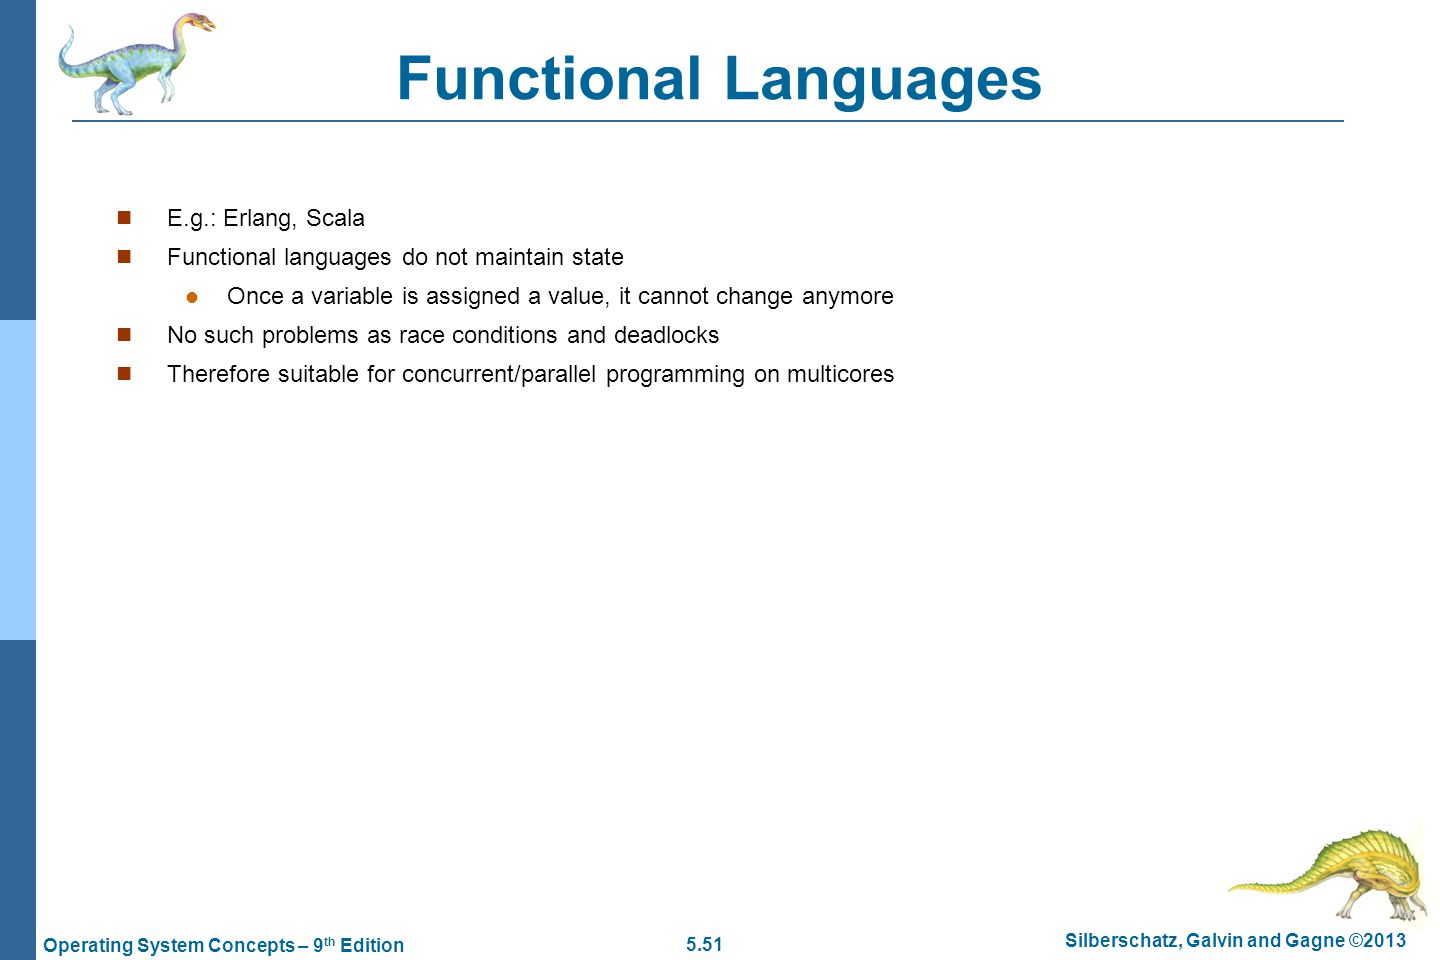 5.51 Silberschatz, Galvin and Gagne ©2013 Operating System Concepts – 9 th Edition Functional Languages E.g.: Erlang, Scala Functional languages do not maintain state l Once a variable is assigned a value, it cannot change anymore n No such problems as race conditions and deadlocks n Therefore suitable for concurrent/parallel programming on multicores